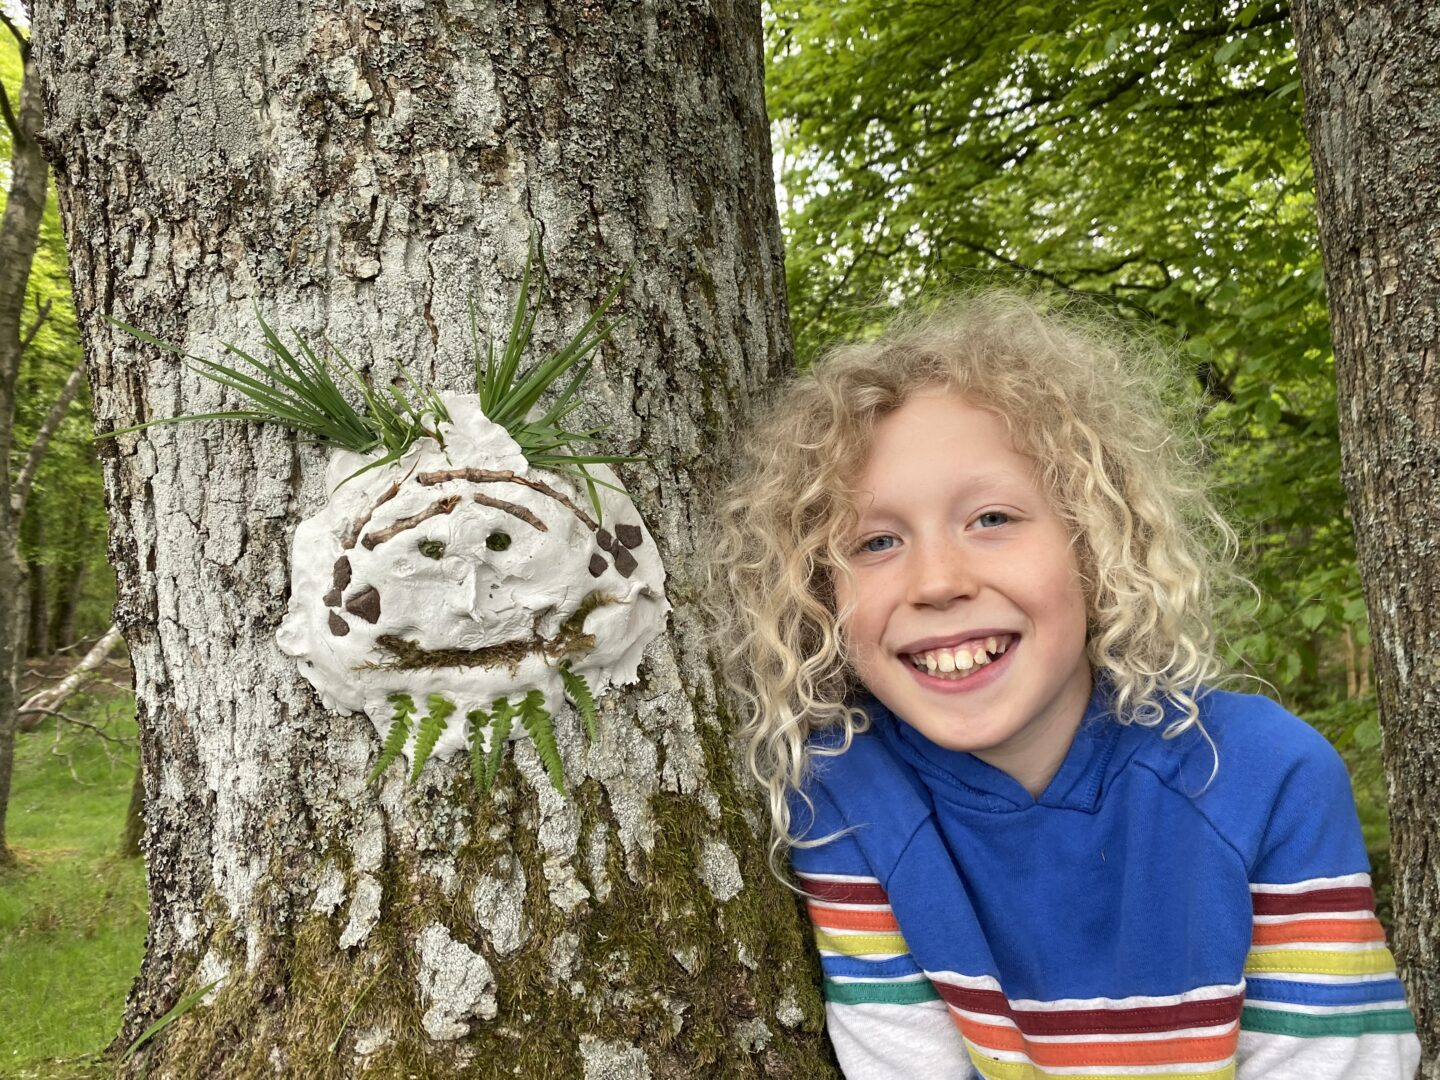 child beside a clay face attached to a tree with natural materials to represent features